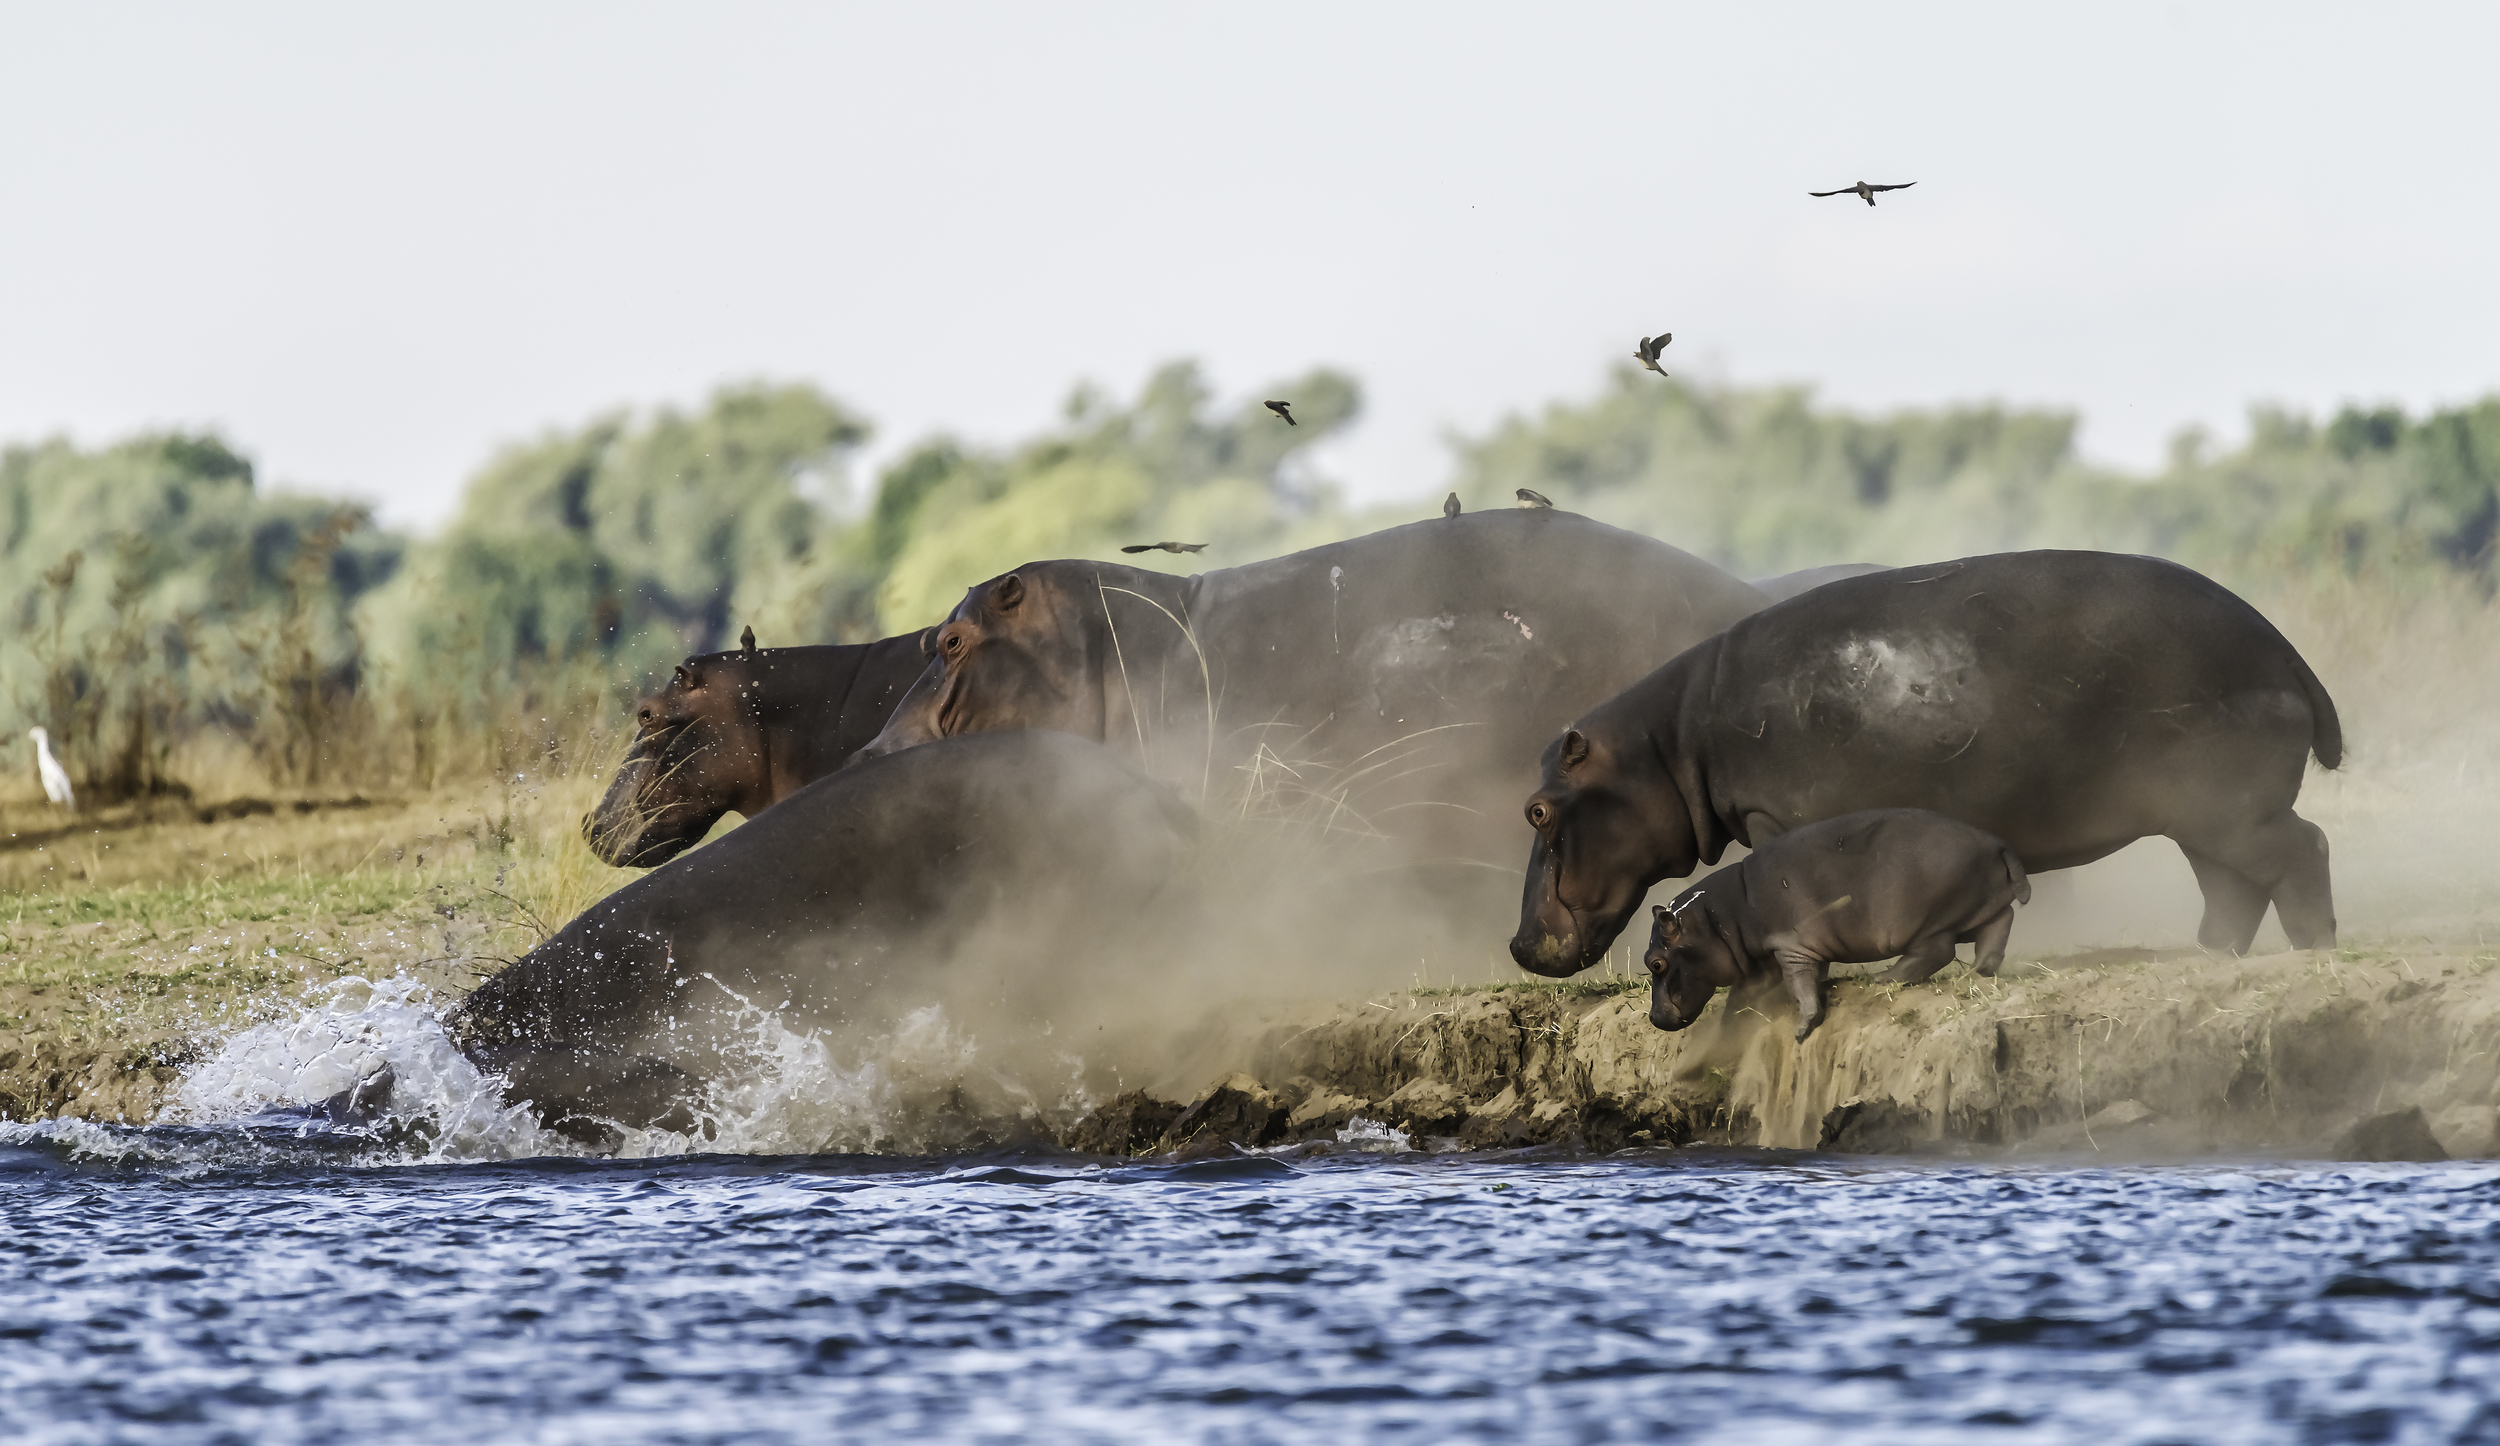 Hippos run into the Zambezi River as our boat approaches.